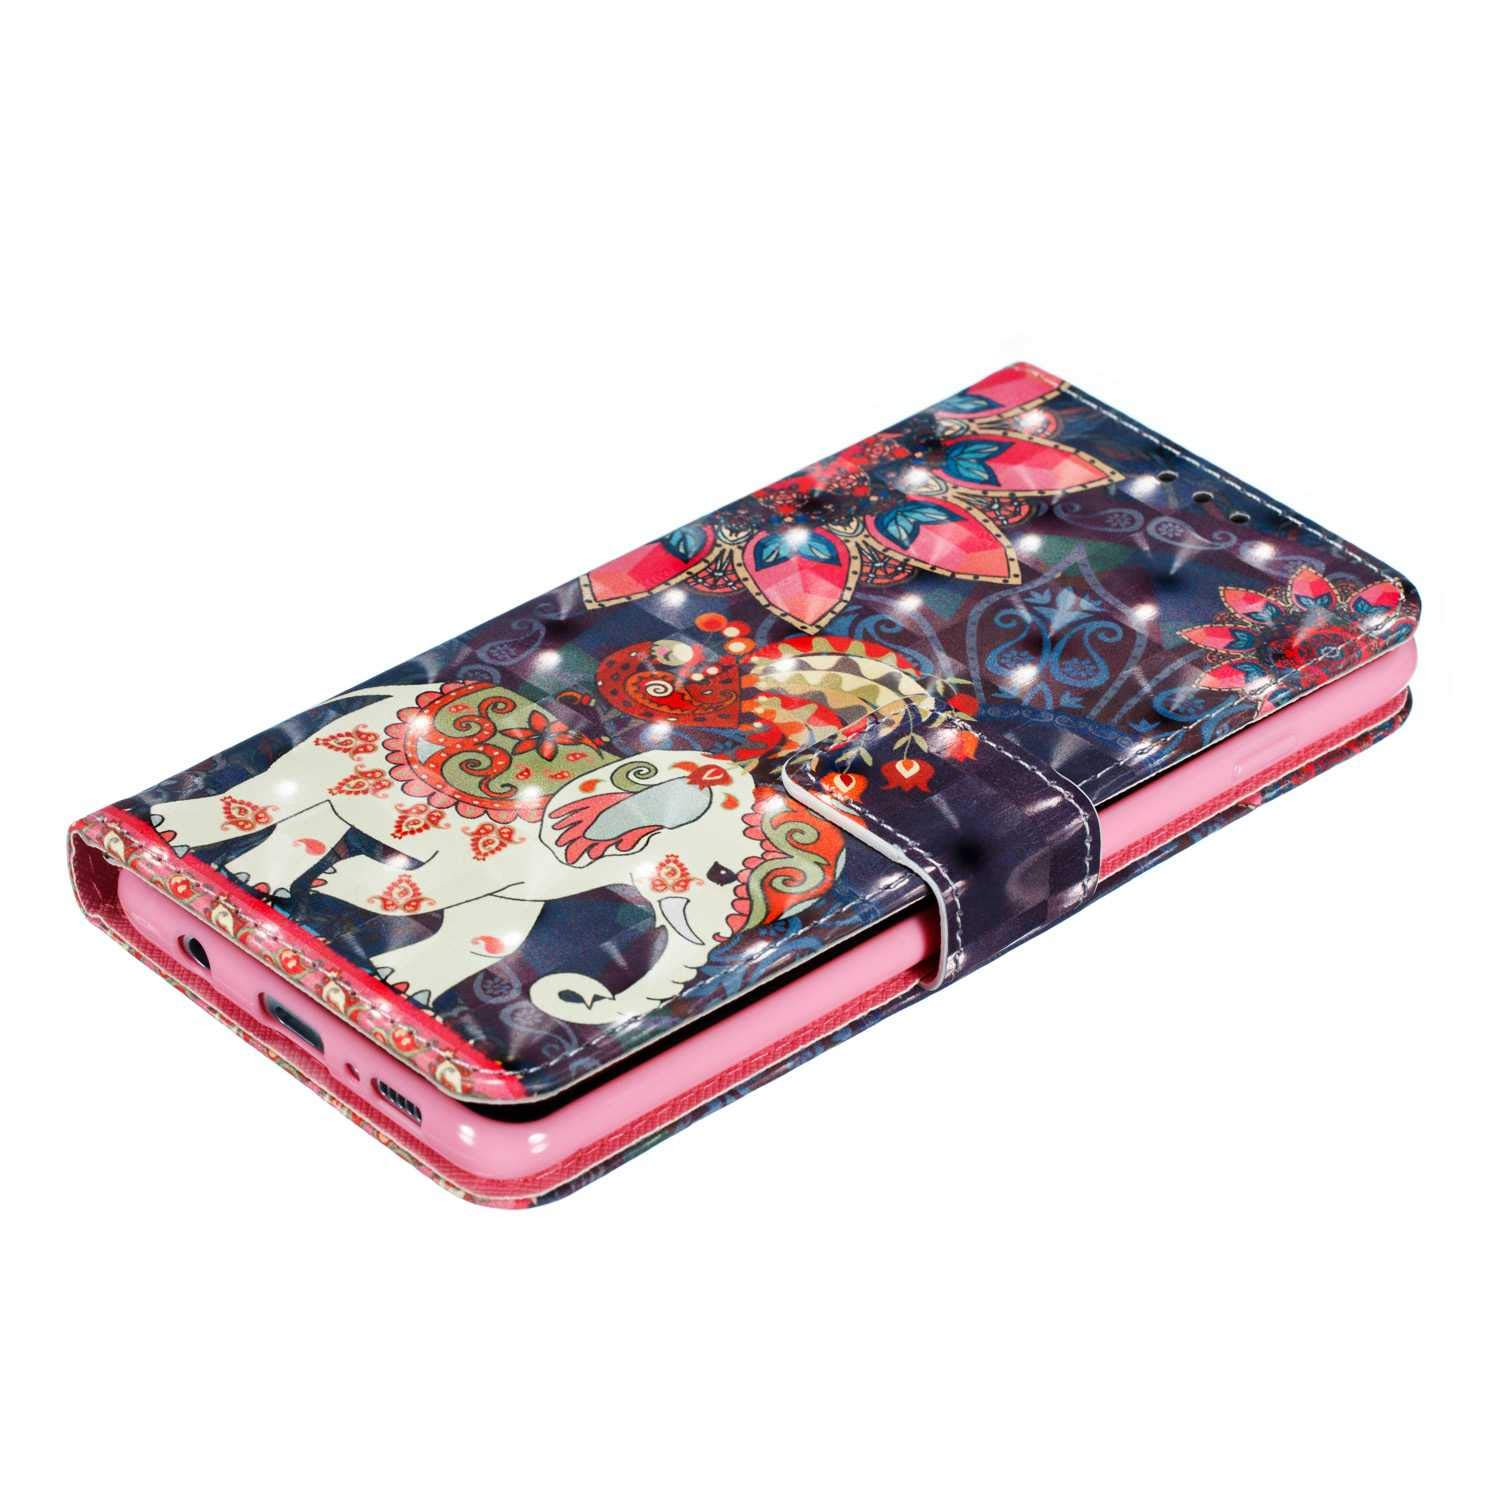 UNEXTATI Fashion Print Pattern PU Leather Flip Cover Wallet Phone Case with Magnetic Closure and Card Slot for Samsung Galaxy S10 Plus Galaxy S10 Plus Case Elephant